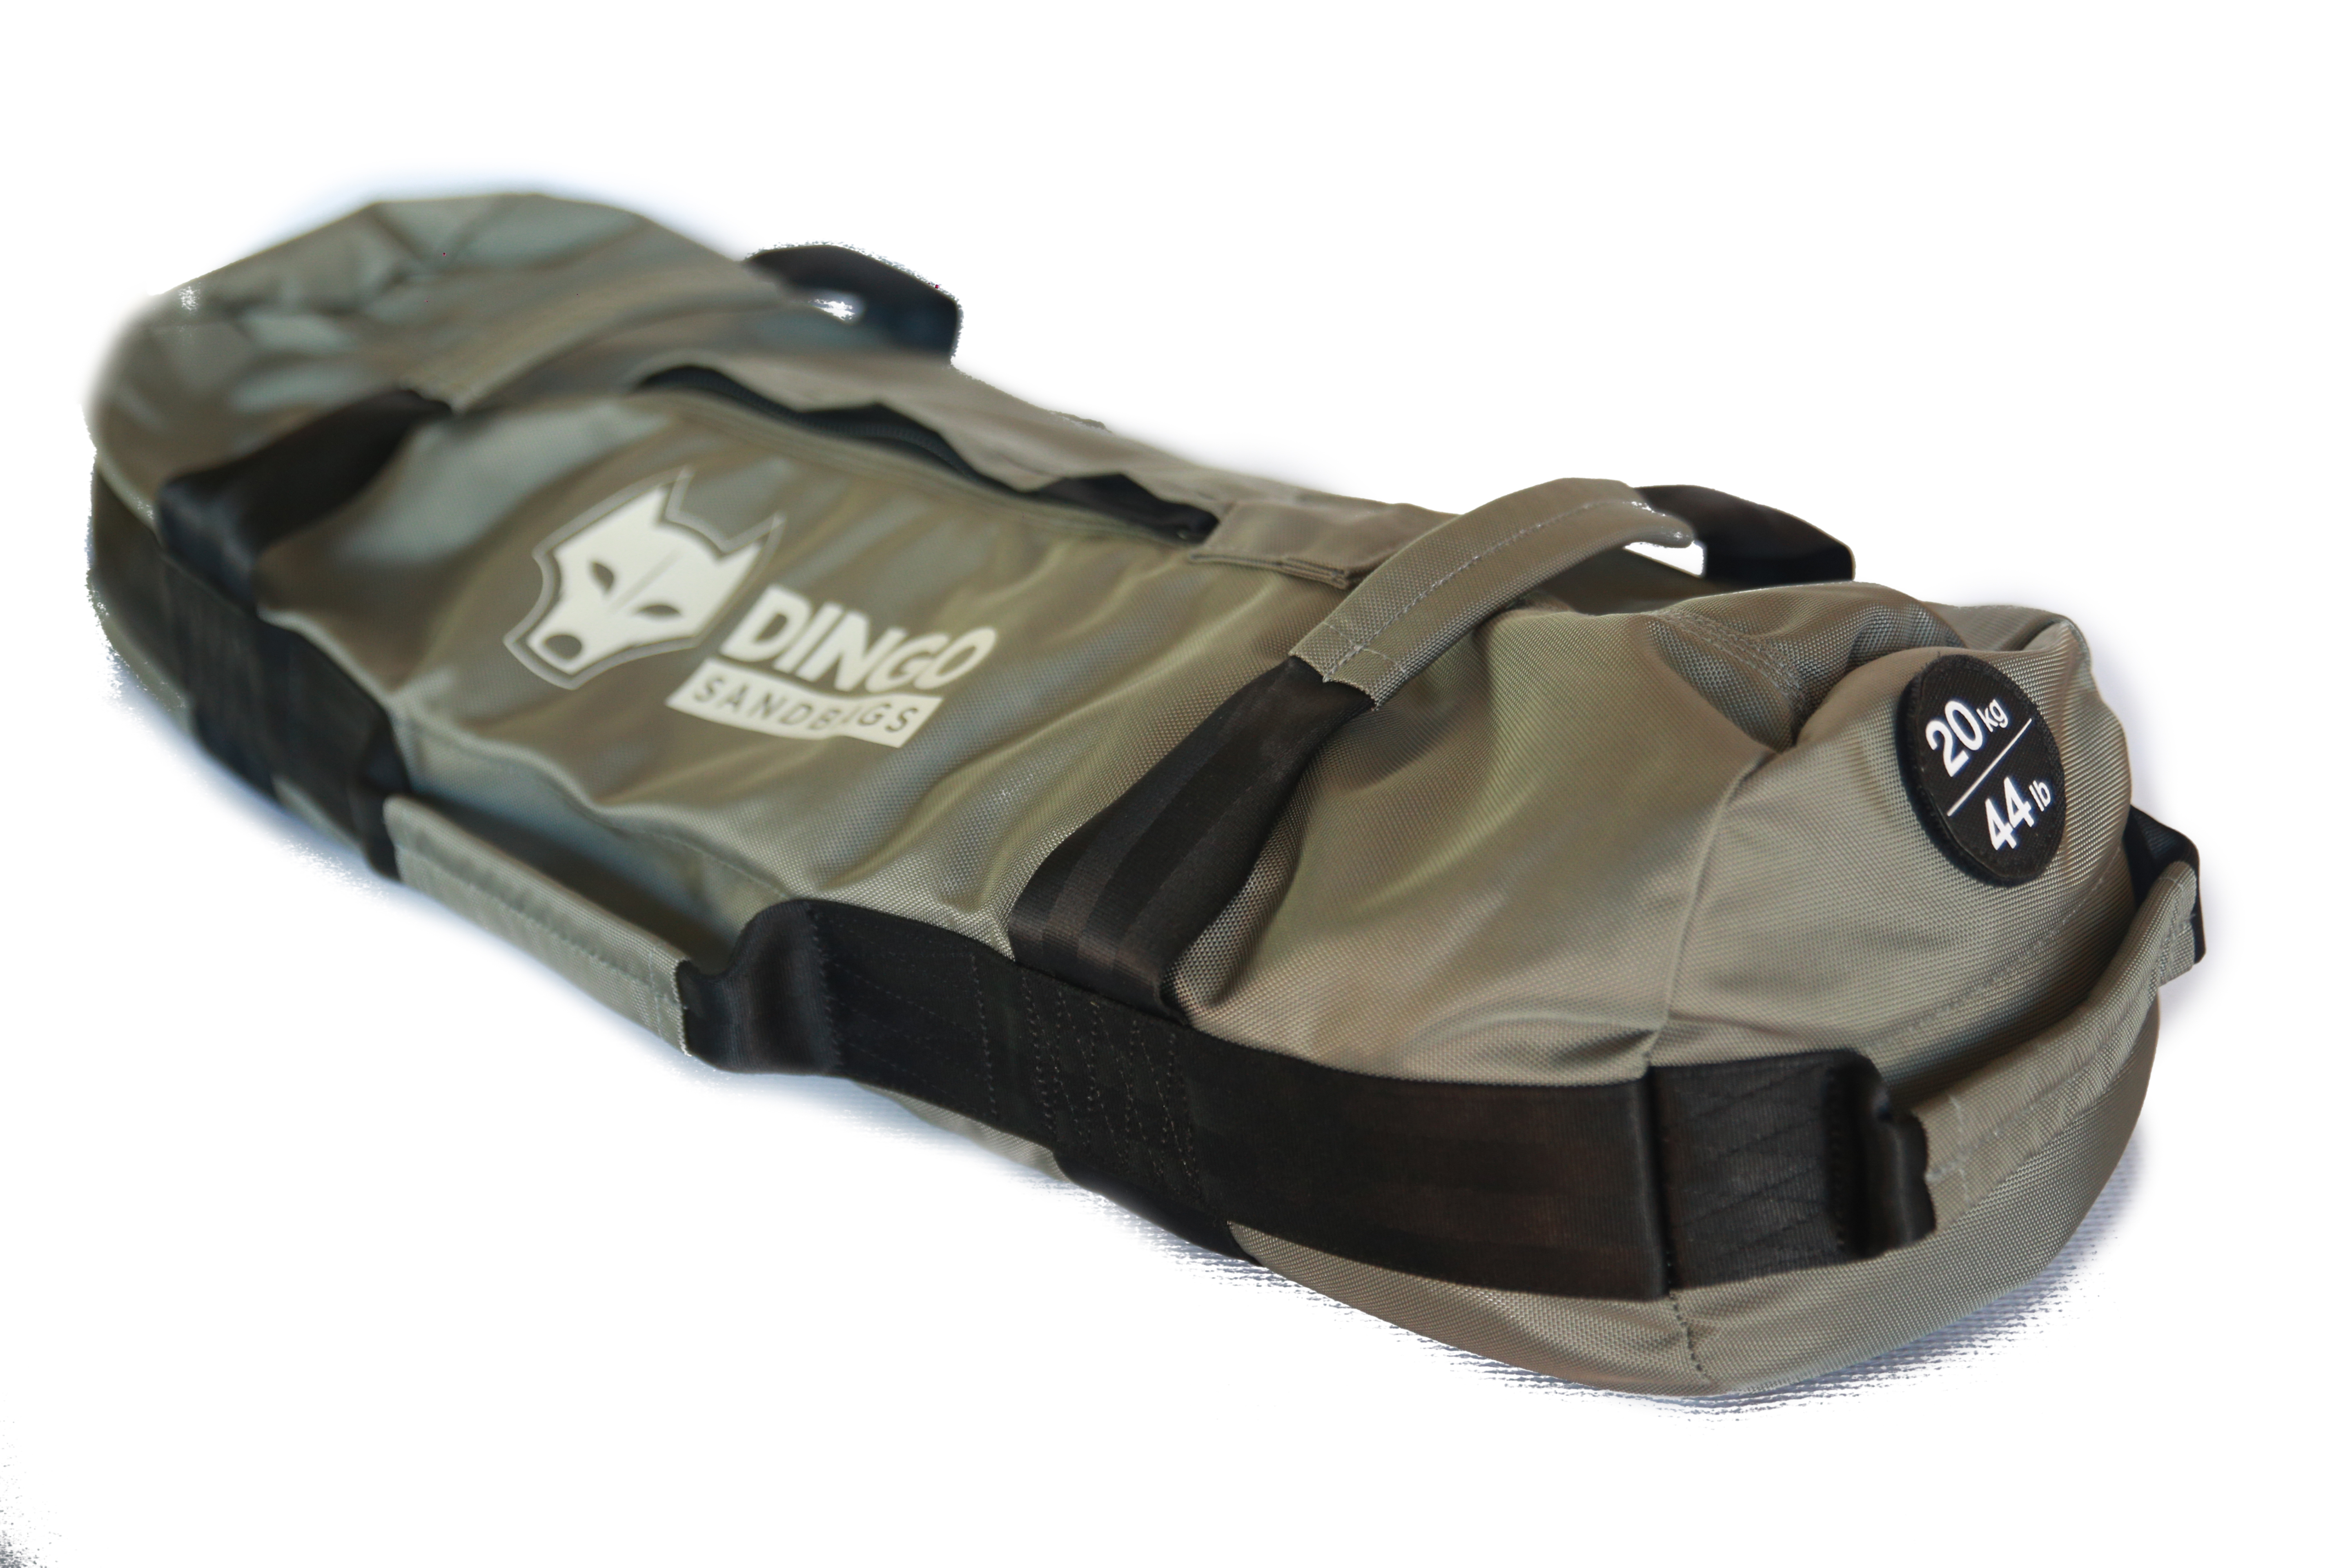 Medium-Large Sandbag 20-30kg (without black tarpaulin base)